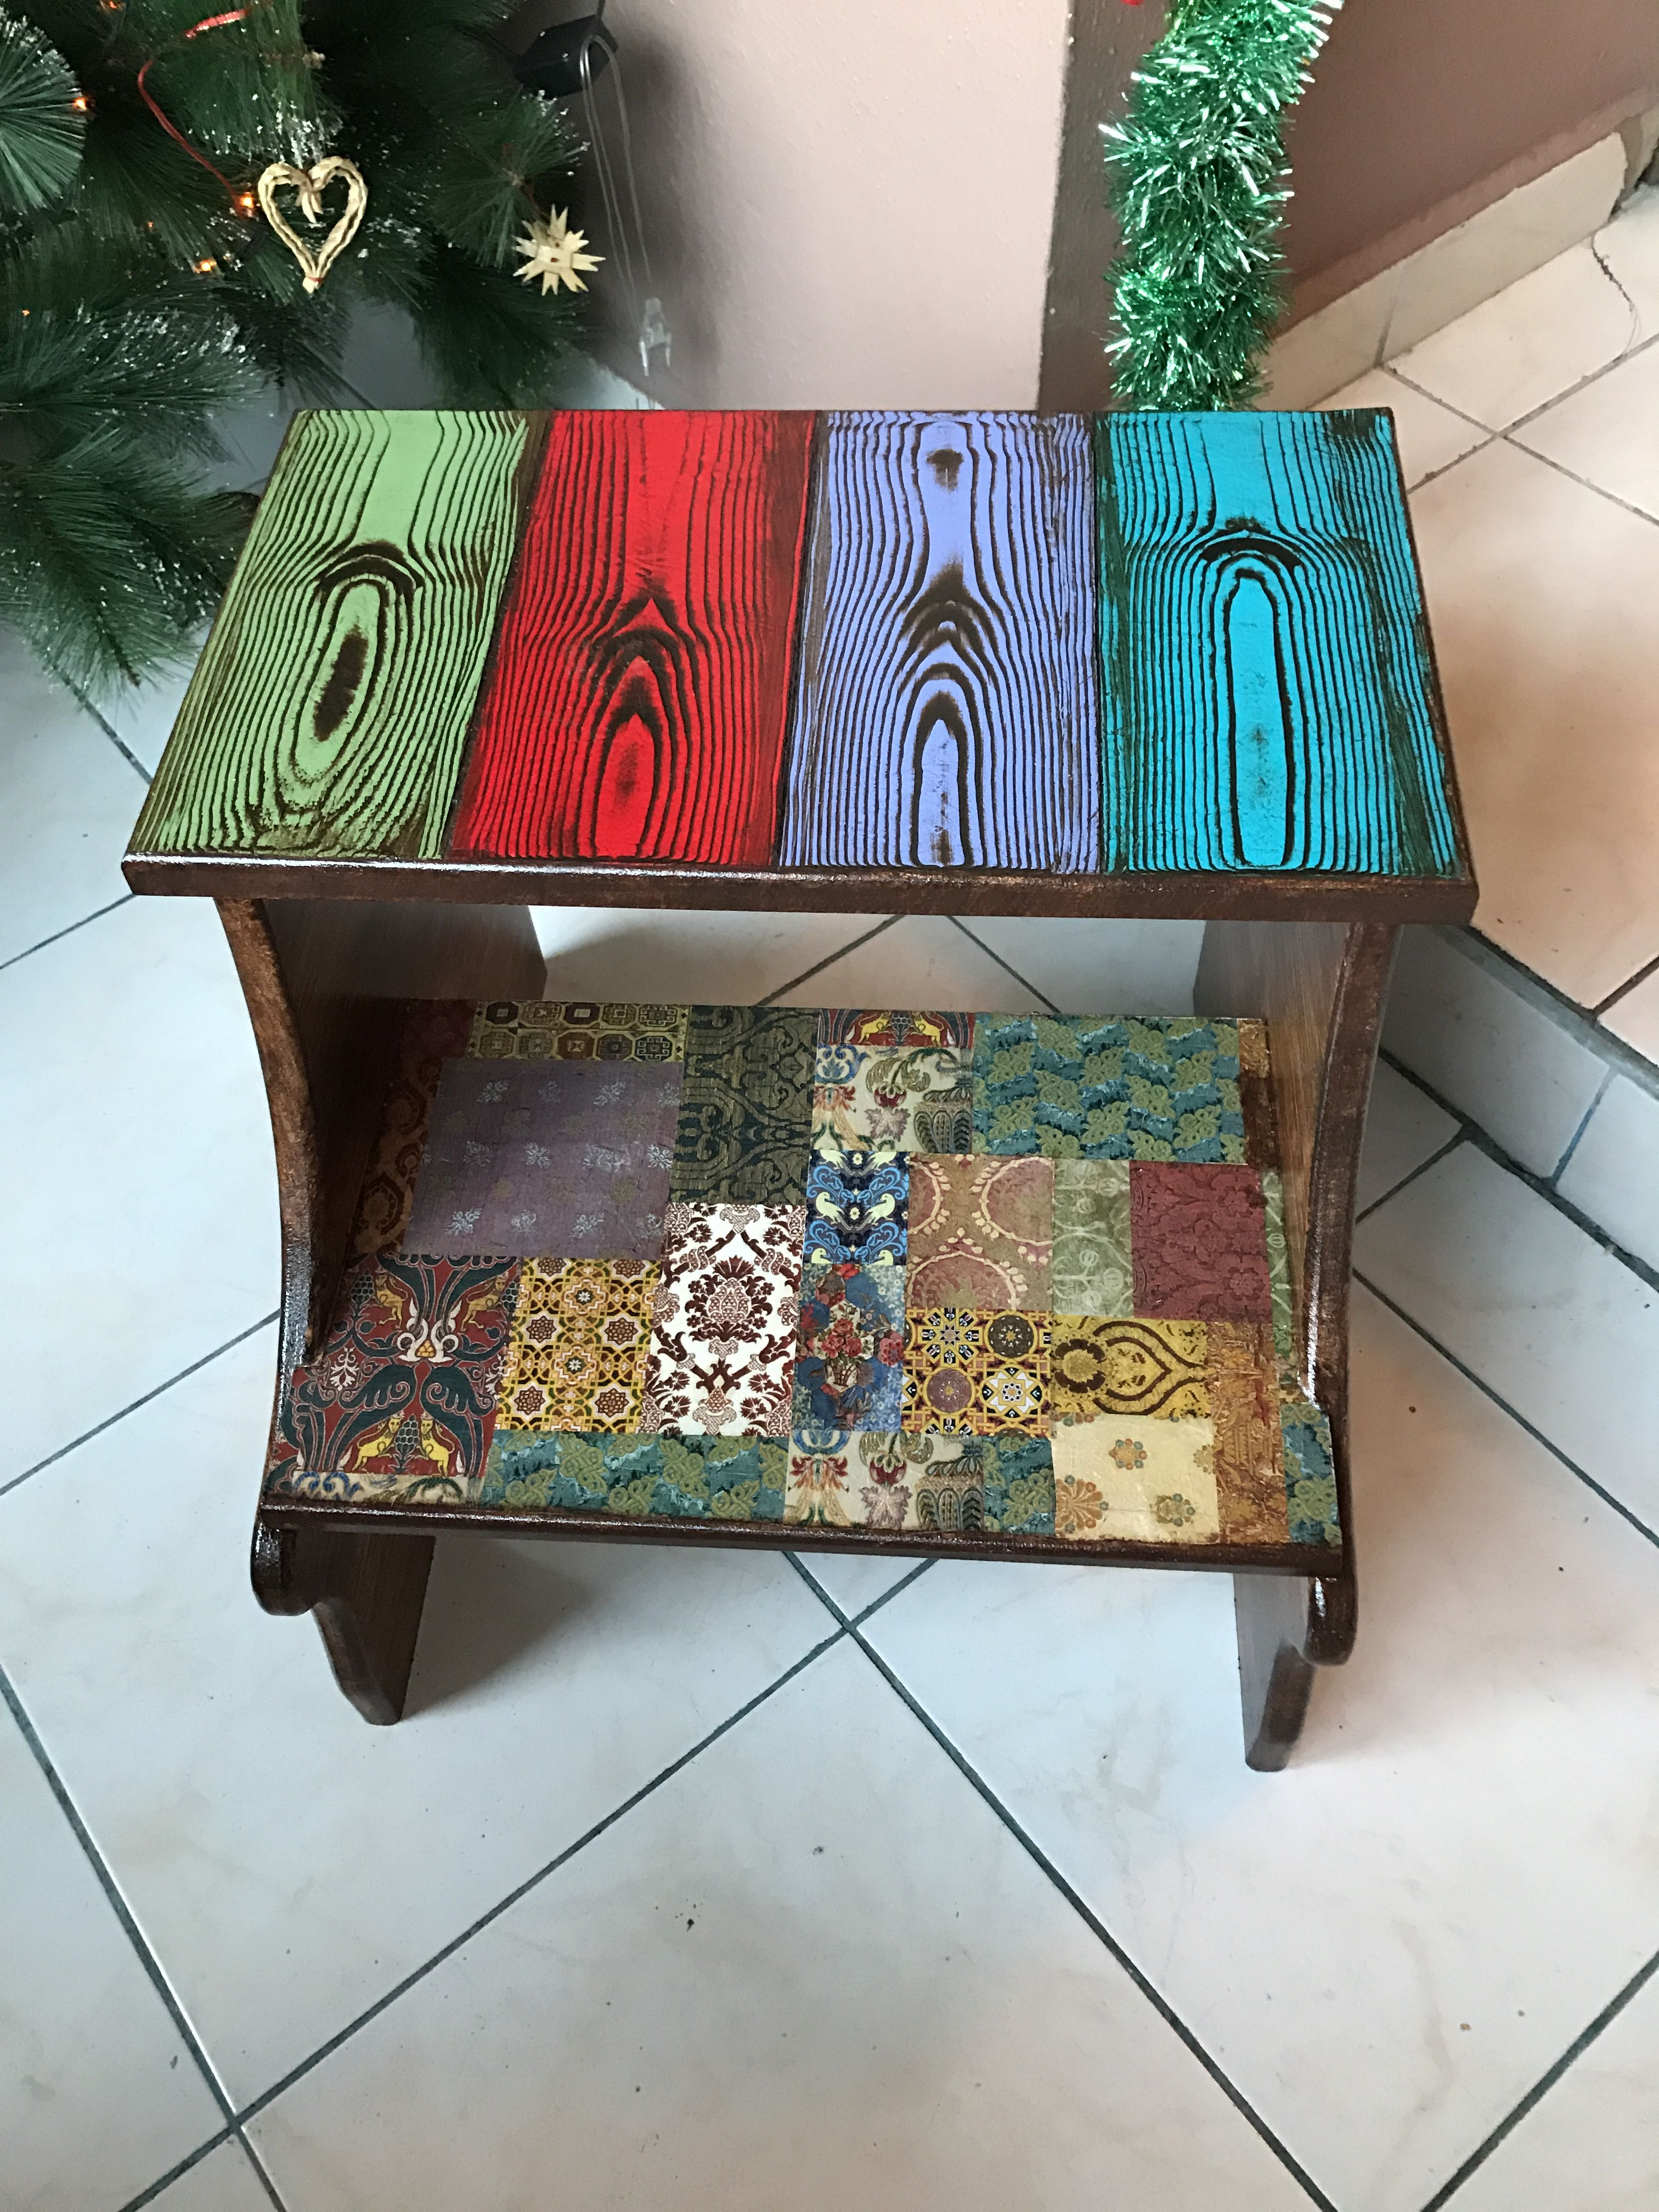 decoupage ideas for furniture. Wood Pallet Crafts, Projects, Paintings, Decoupage Ideas, Furniture Restoration, Upcycling Paint Furniture, Ideas For